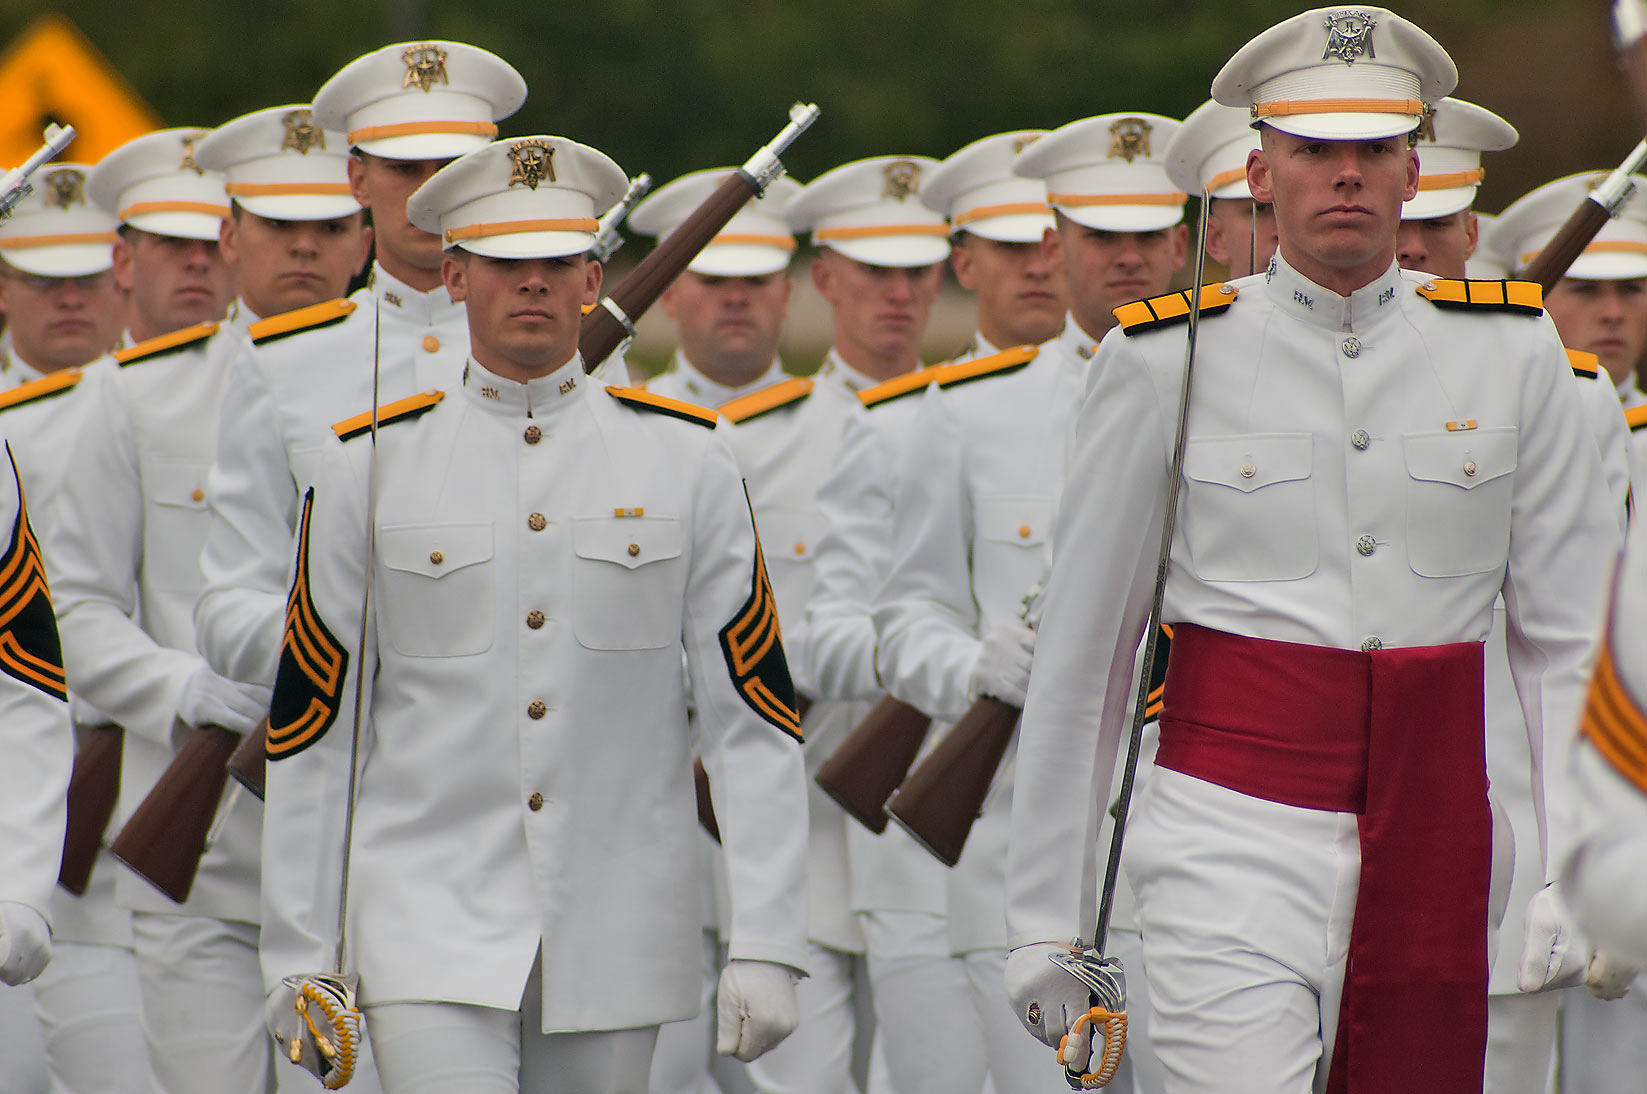 Marching cadets of Texas A&M University...University Dr.. College Station, Texas